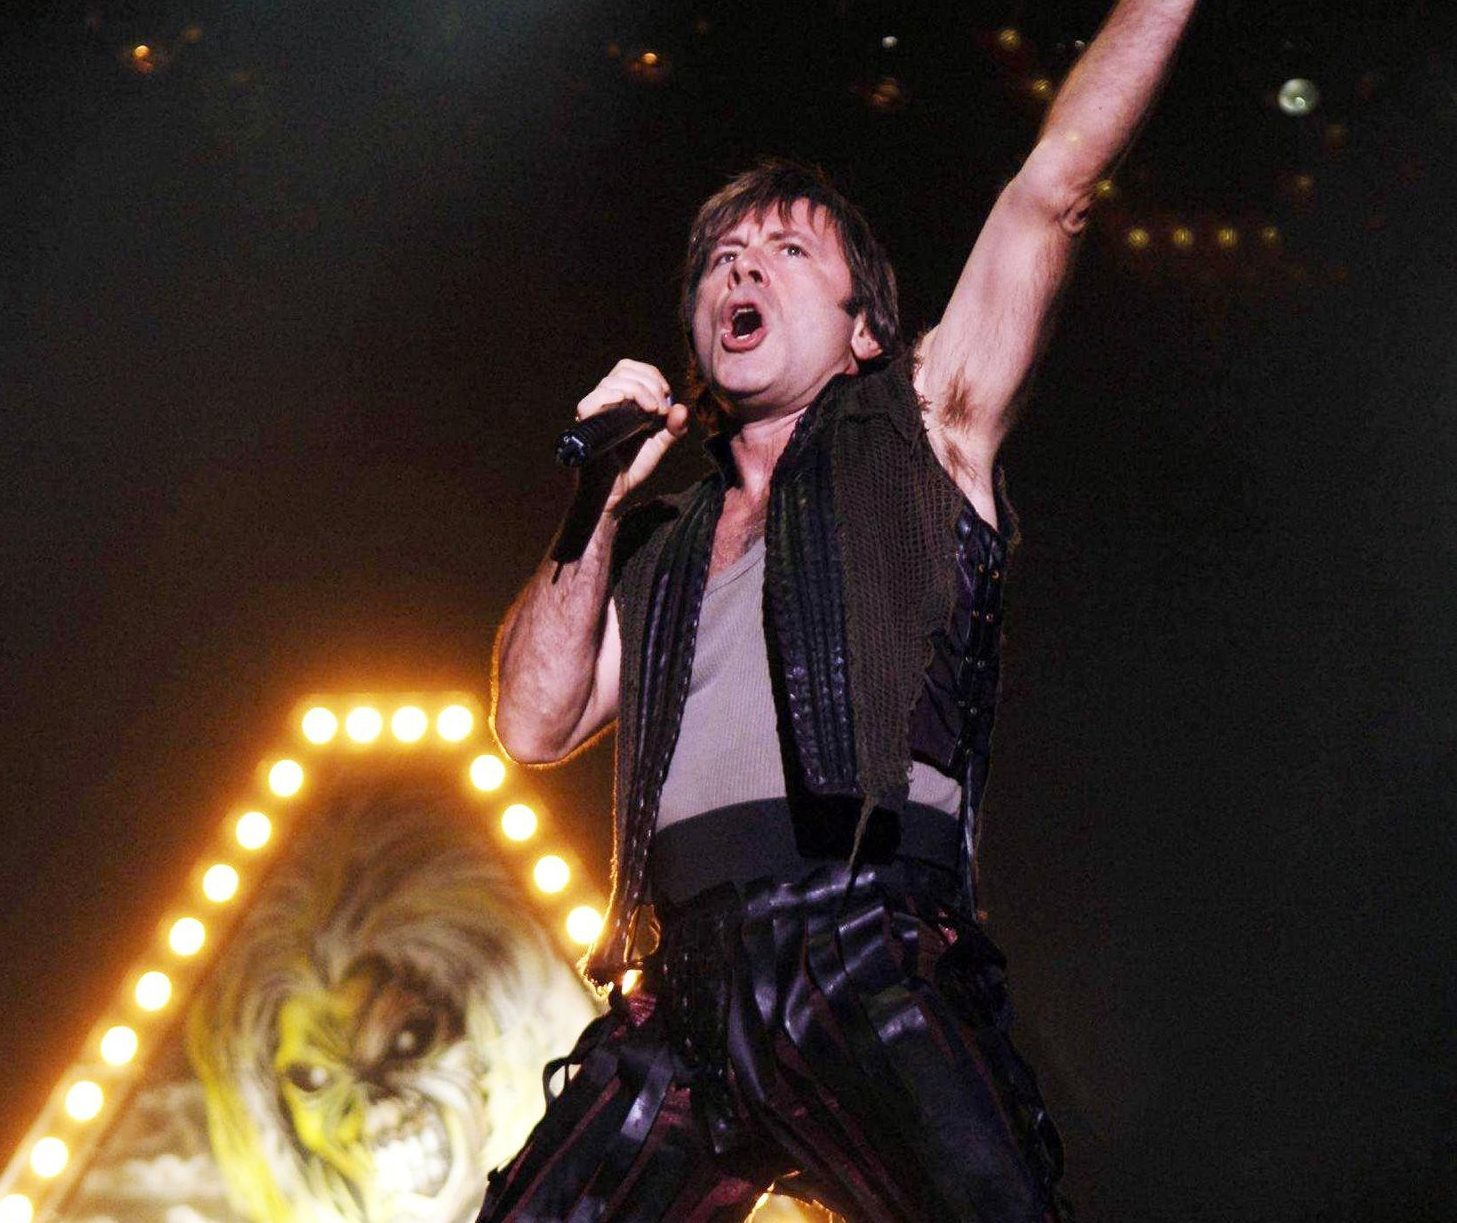 Bruce Dickinson of Iron Maiden delights the crowds.